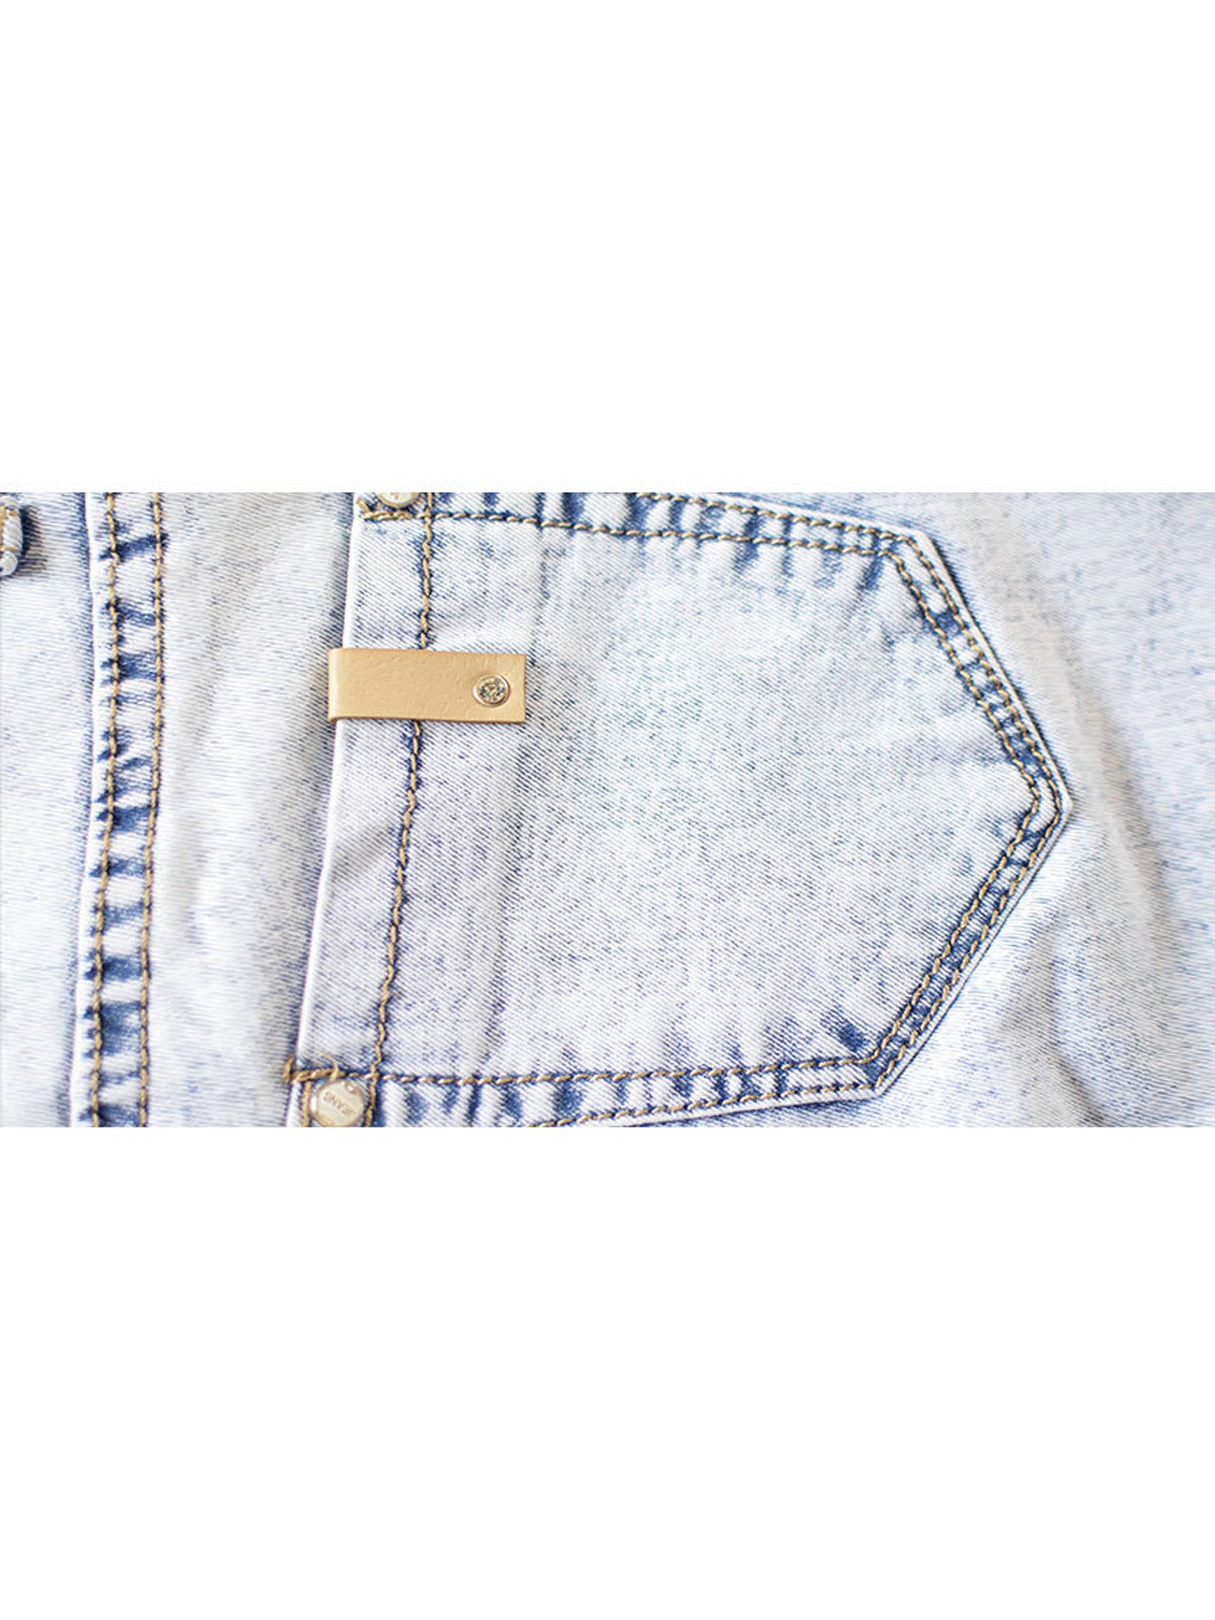 Skinny Jeans In Snow Wash от Yoins.com INT